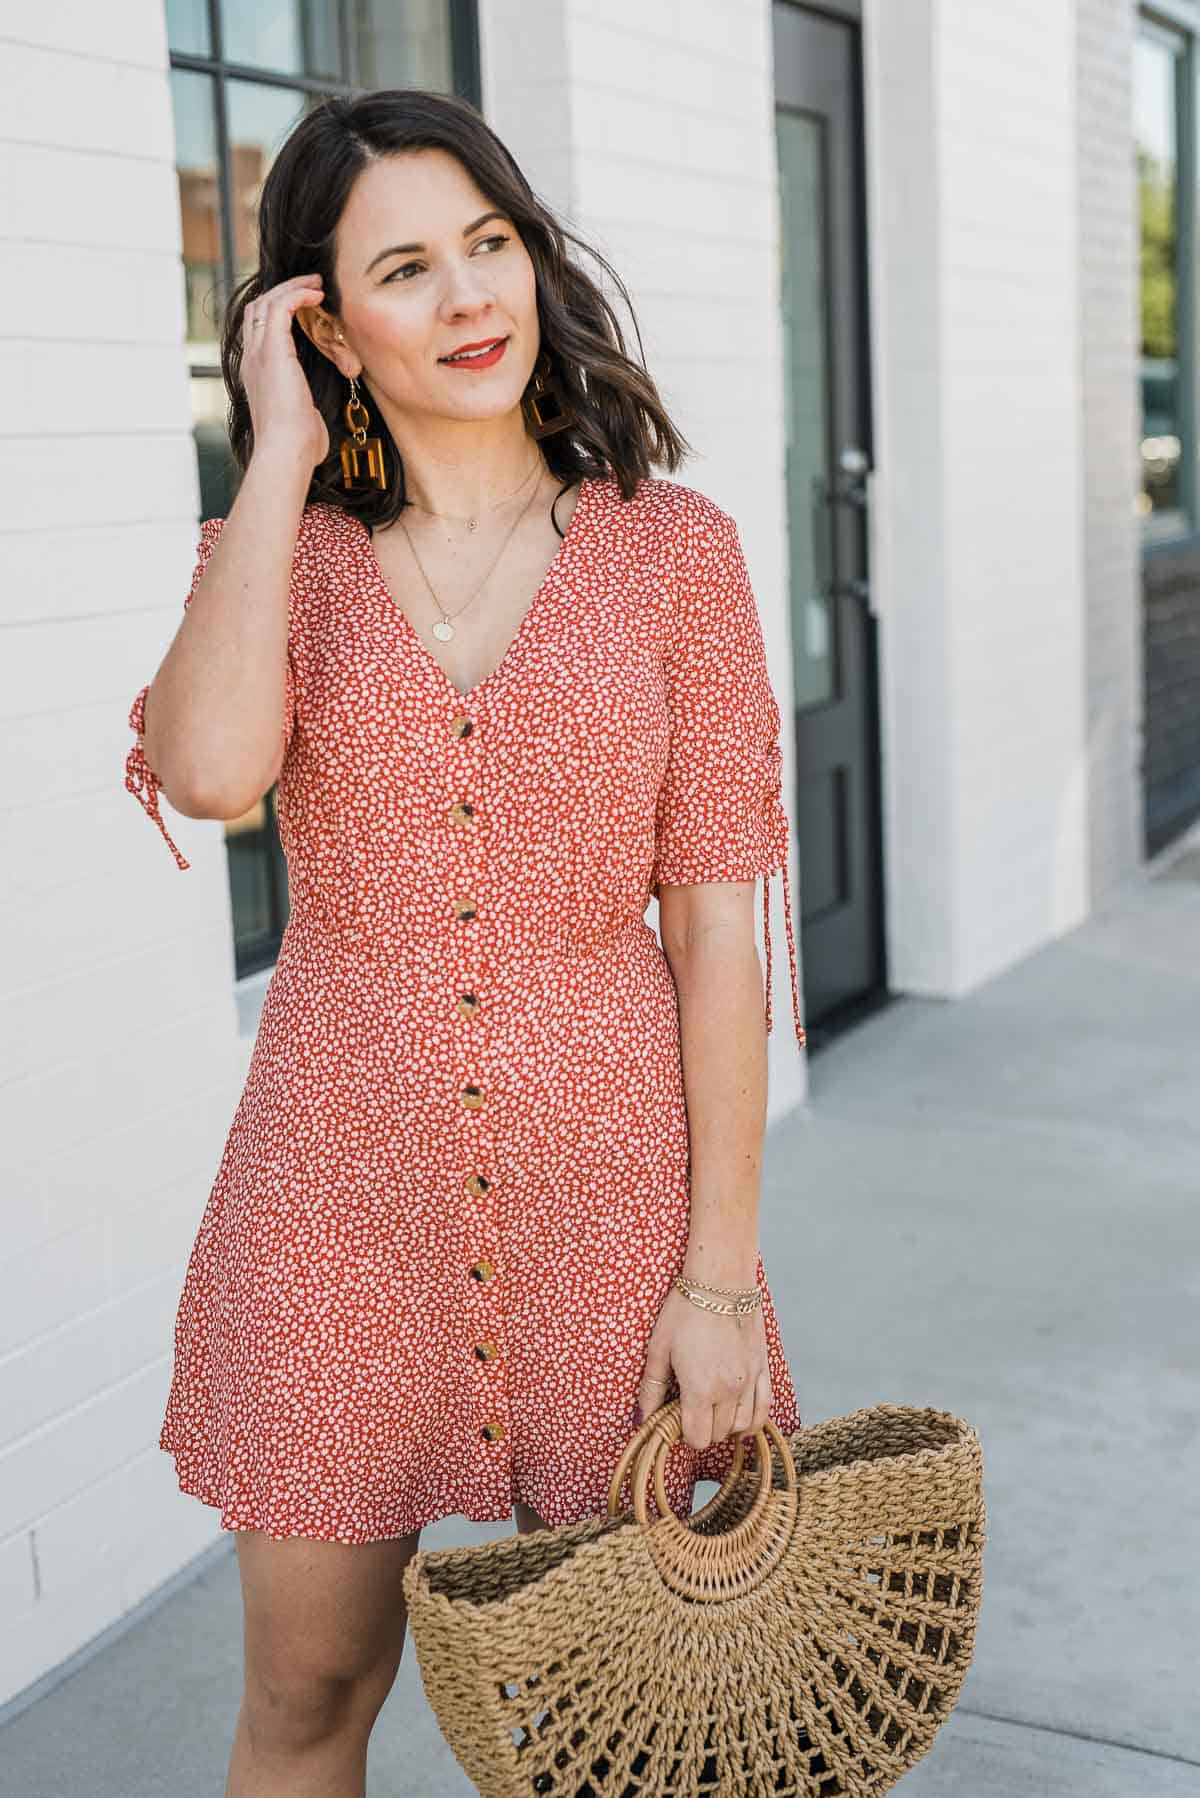 Jessica Camerata is wearing a red printed v-neck dress from H&M